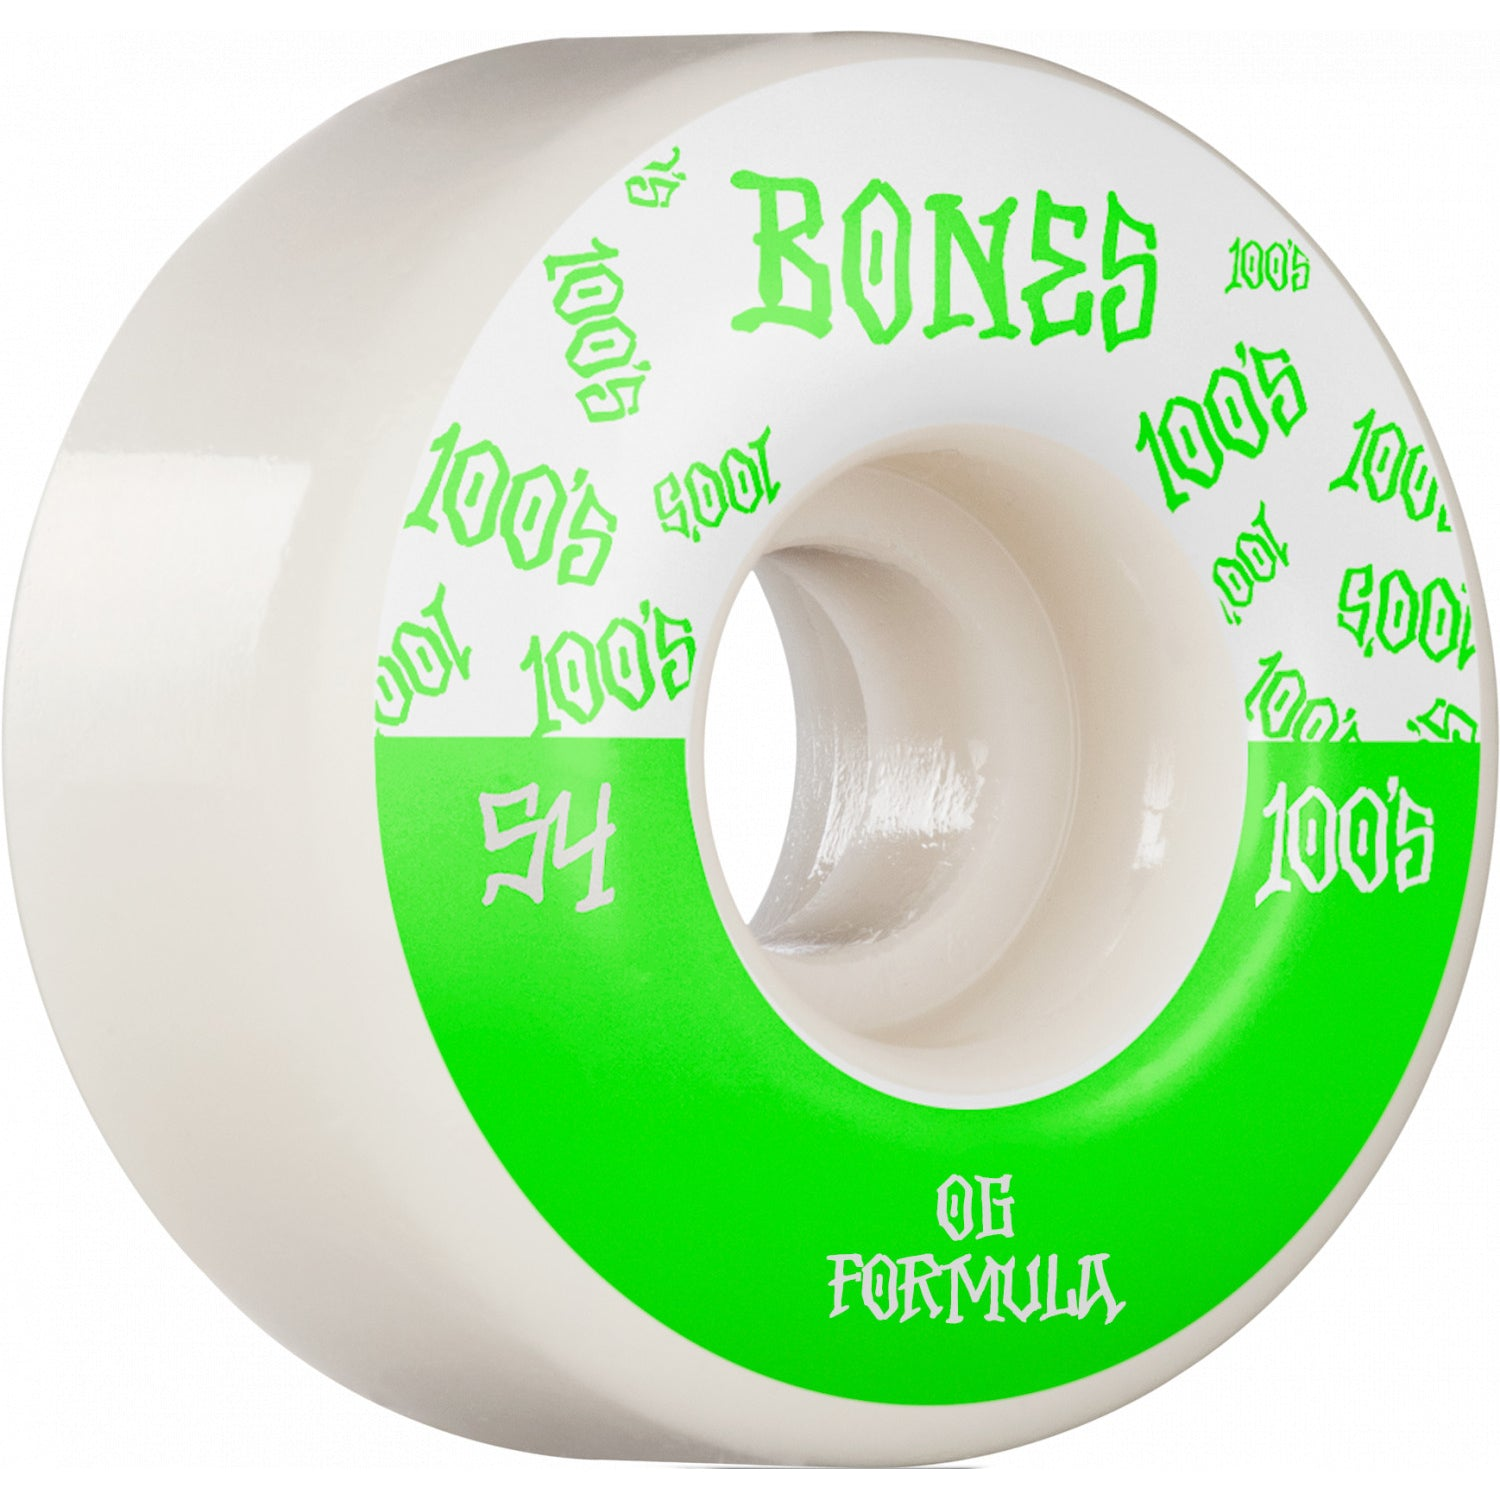 Bones Wheels 100's #13 V4 Wide White 54mm